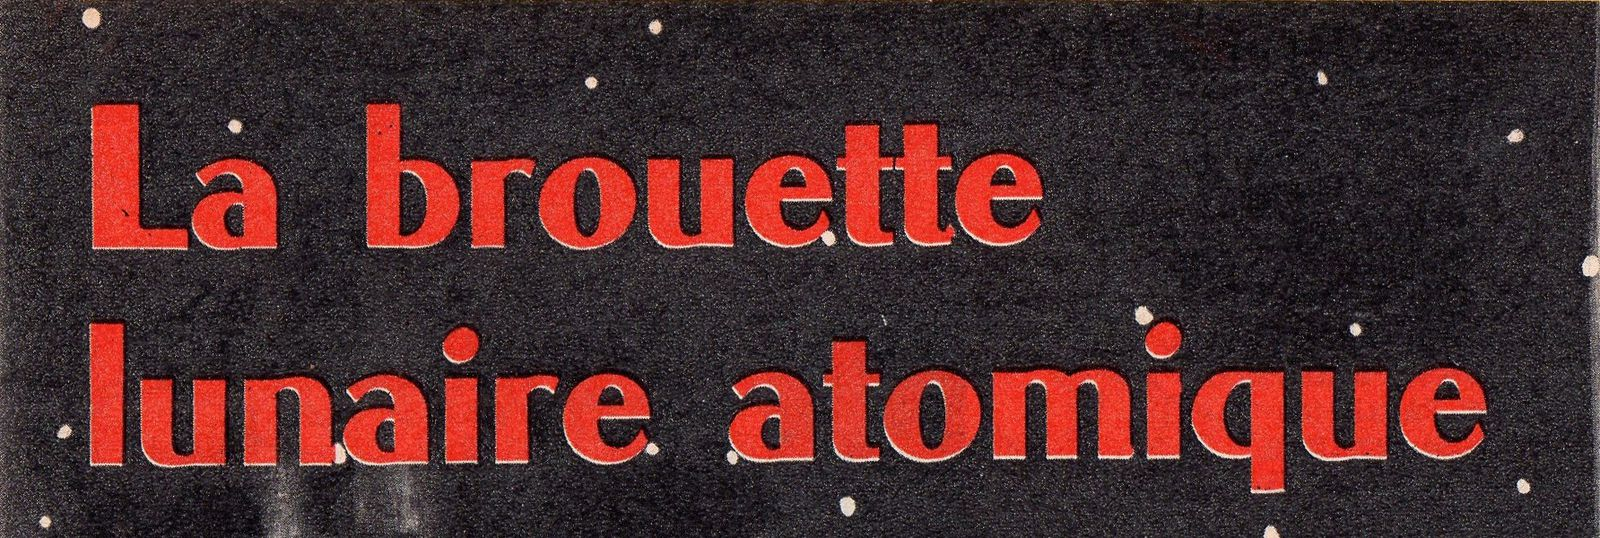 """La brouette lunaire atomique"" par Antoine Icart in Journal de Mickey n°557 (1963)"